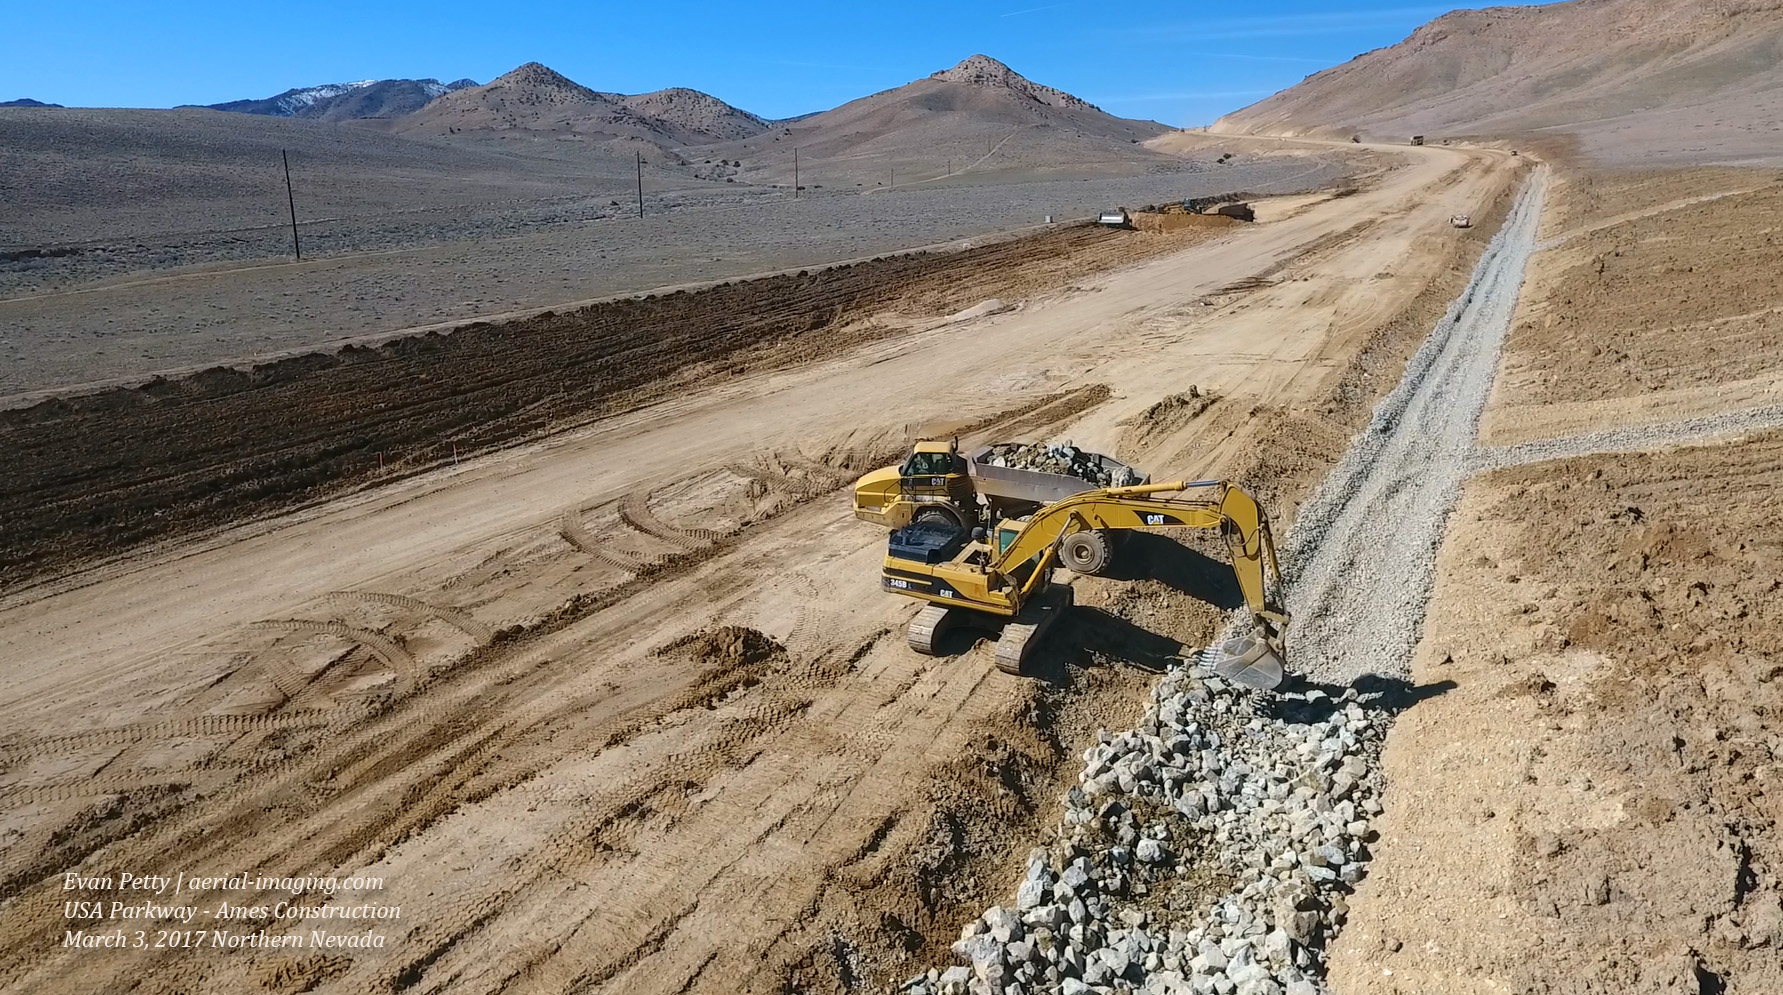 drone aerial view of grading the usa parkway in nevada